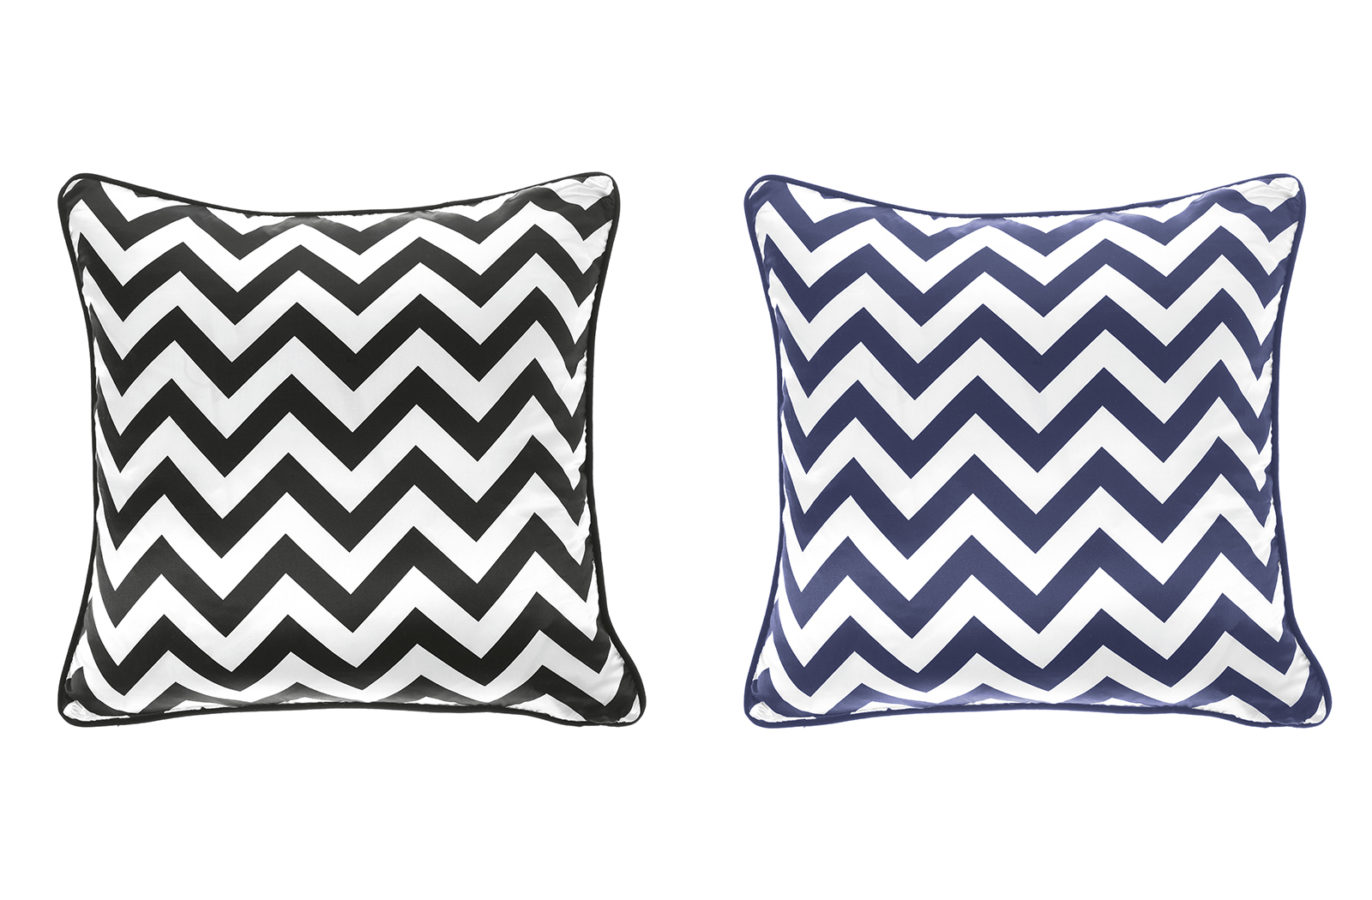 Gianfranco Ferre Home Chevron Cushion 01